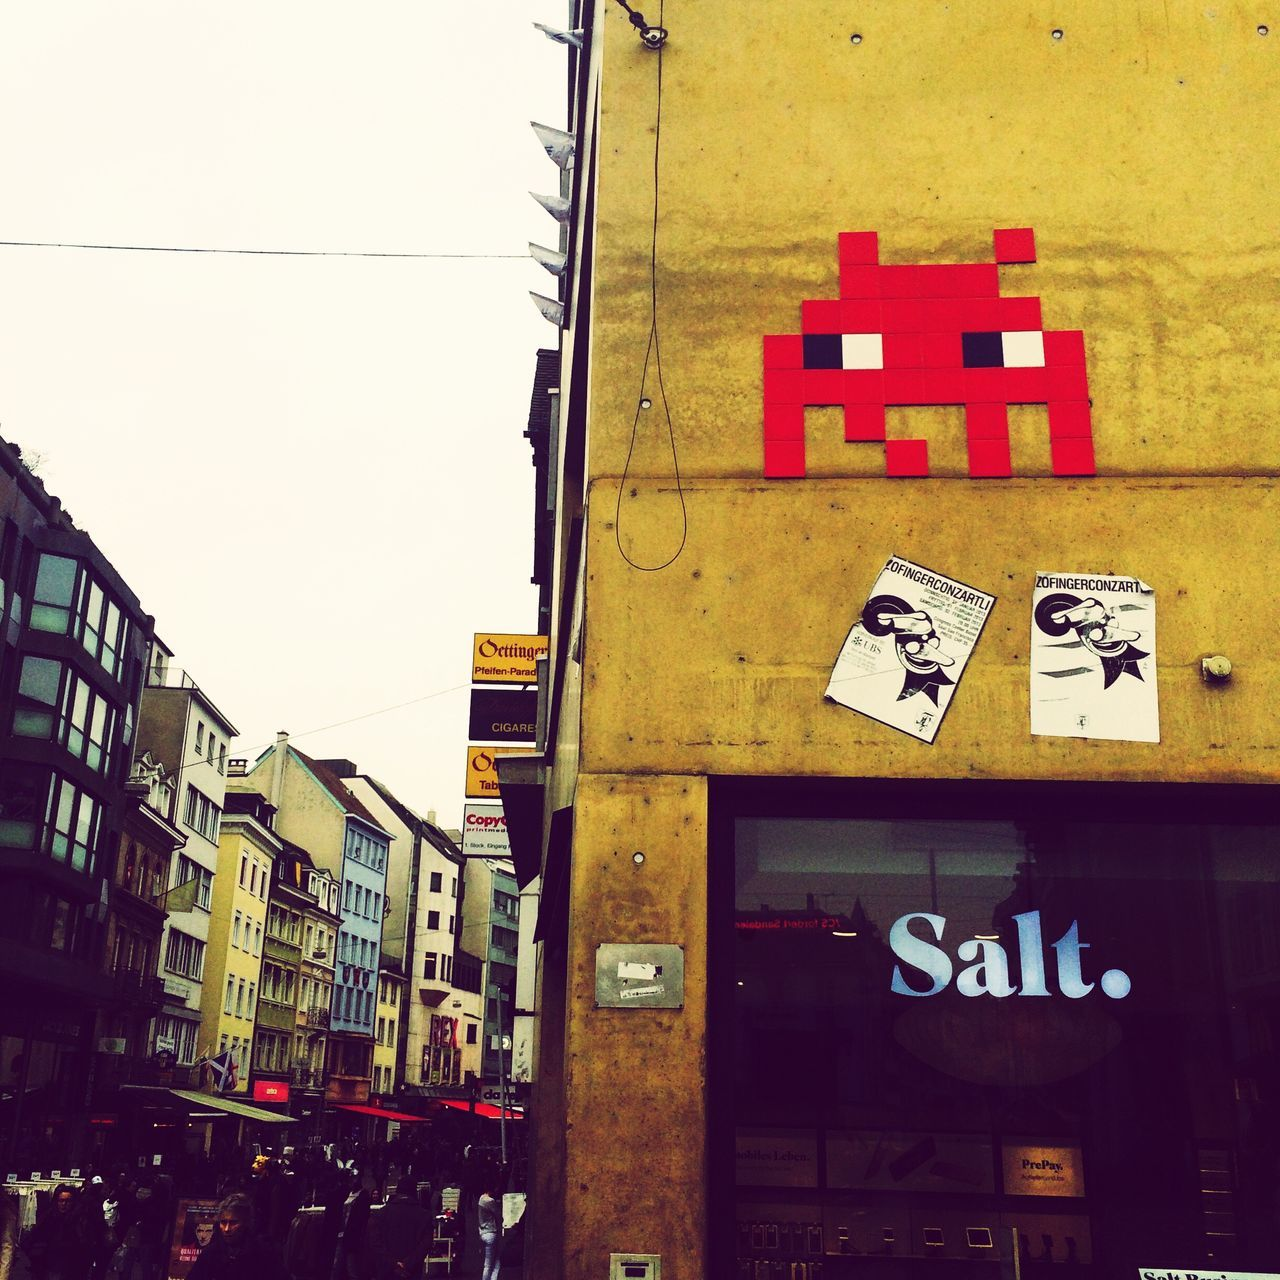 Space Invaders Street Art Basel, Switzerland Building Exterior Architecture Built Structure Low Angle View Text City No People Day Outdoors EyeEmNewHere